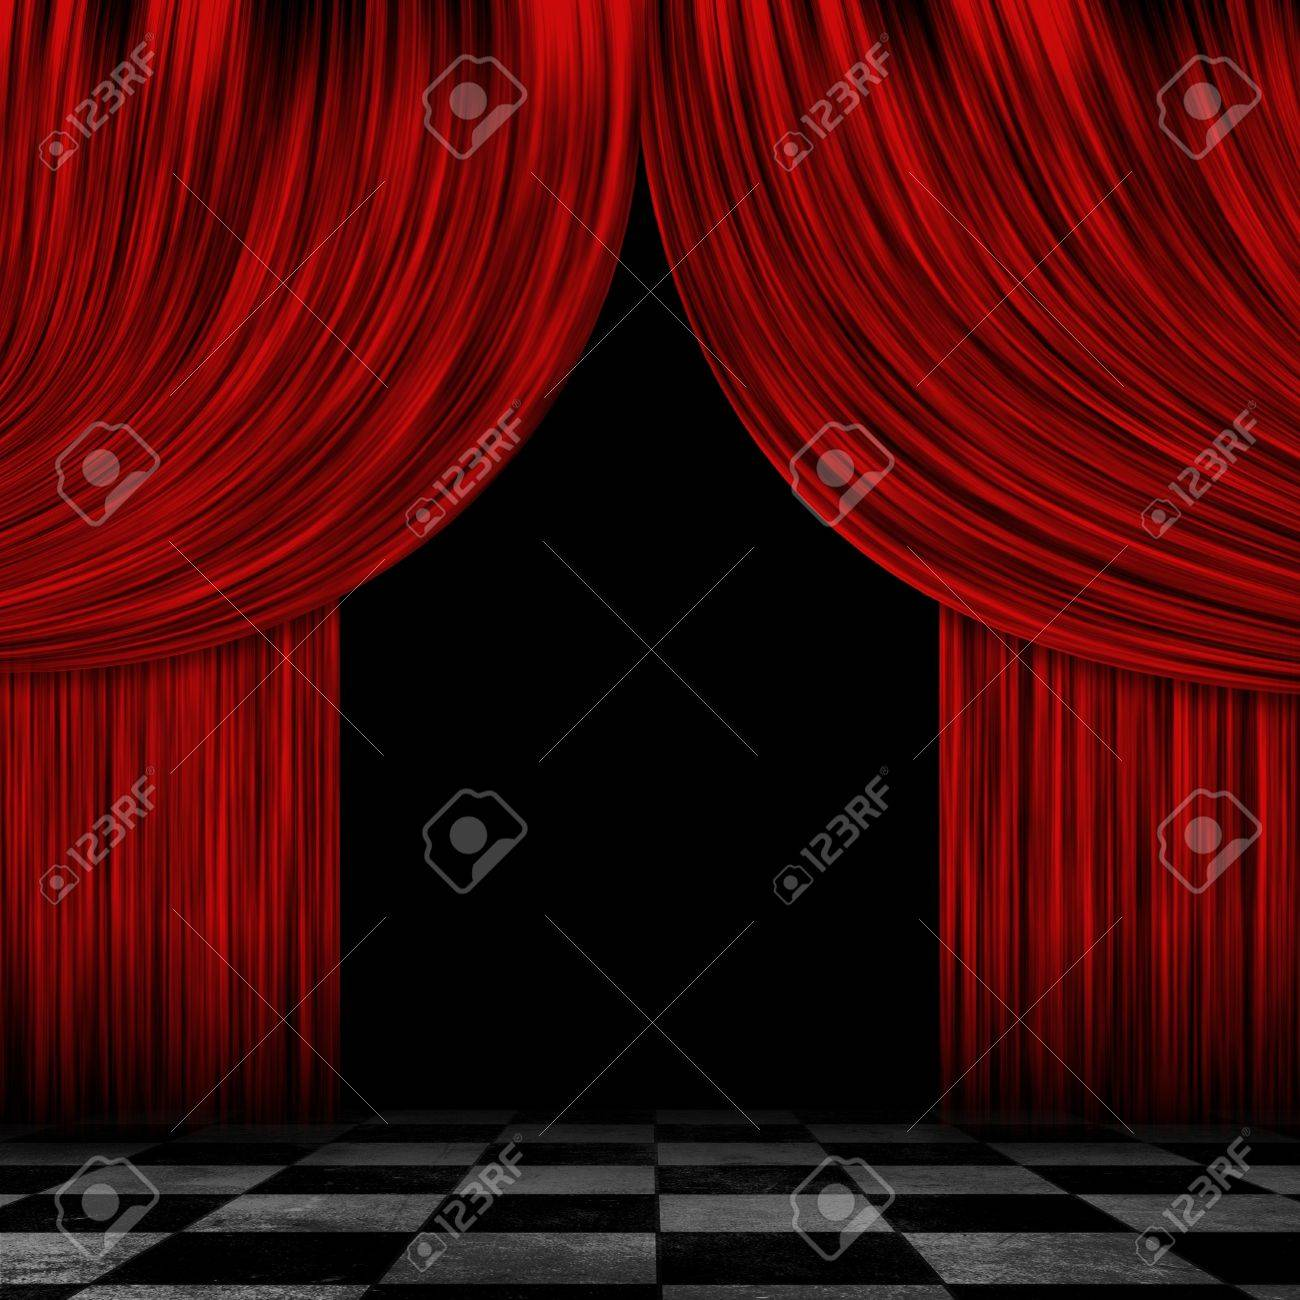 with theater cartoondealer background a com drapes curtains transparent image vector illustration